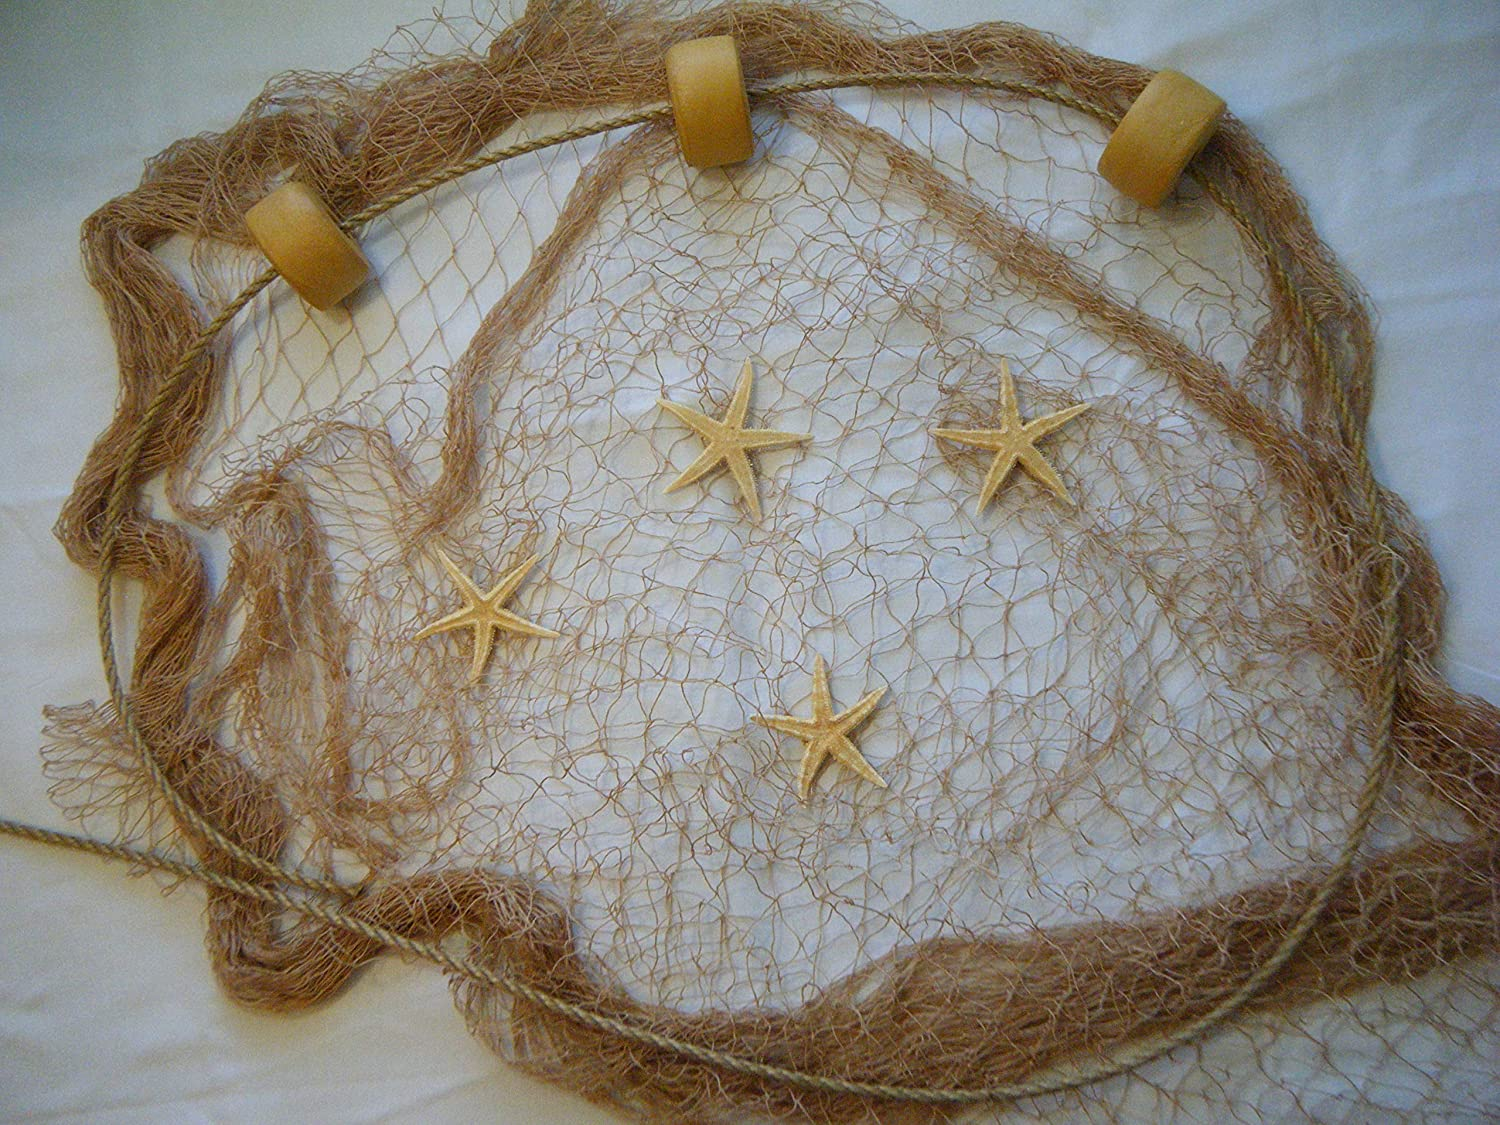 10 X 9 Fishing Net Fish Net Netting Rope Starfish Floats Nautical Decor